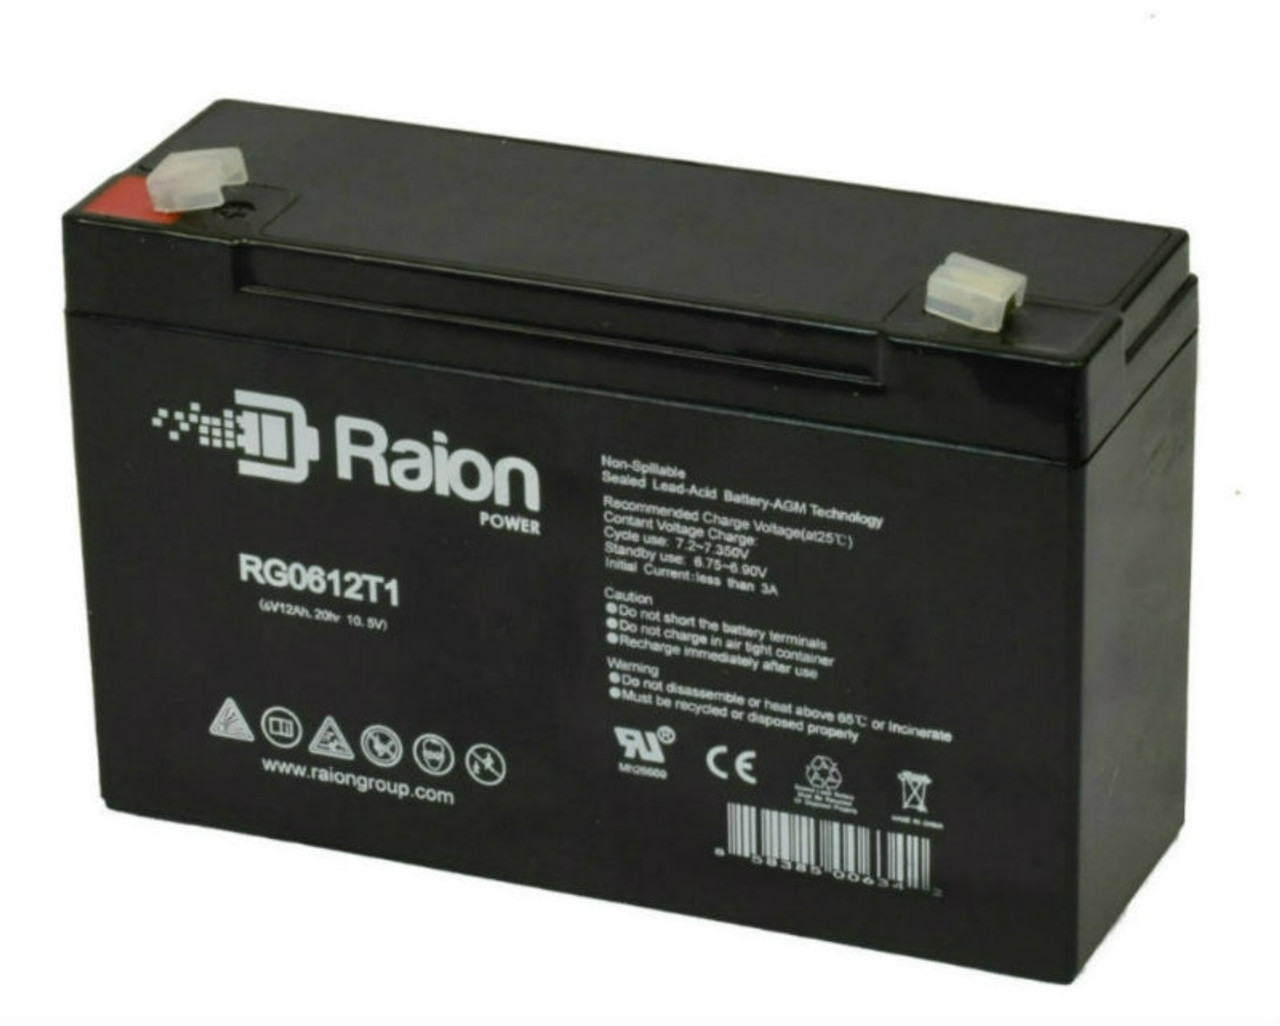 Raion Power RG06120T1 Replacement Battery Pack for Light Alarms RPG1 emergency light